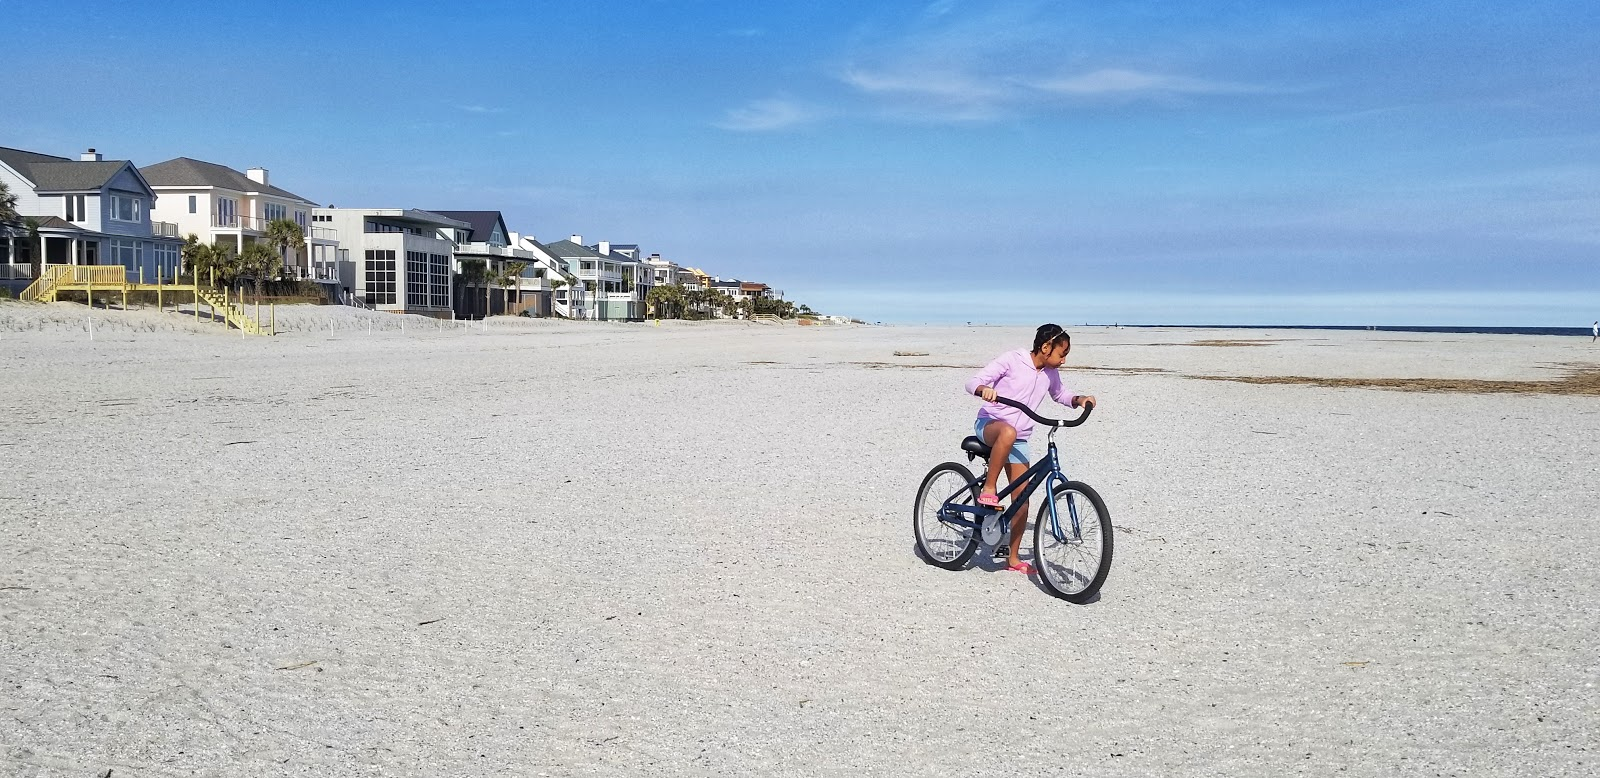 Biking on Beach at Wild Dunes Resort